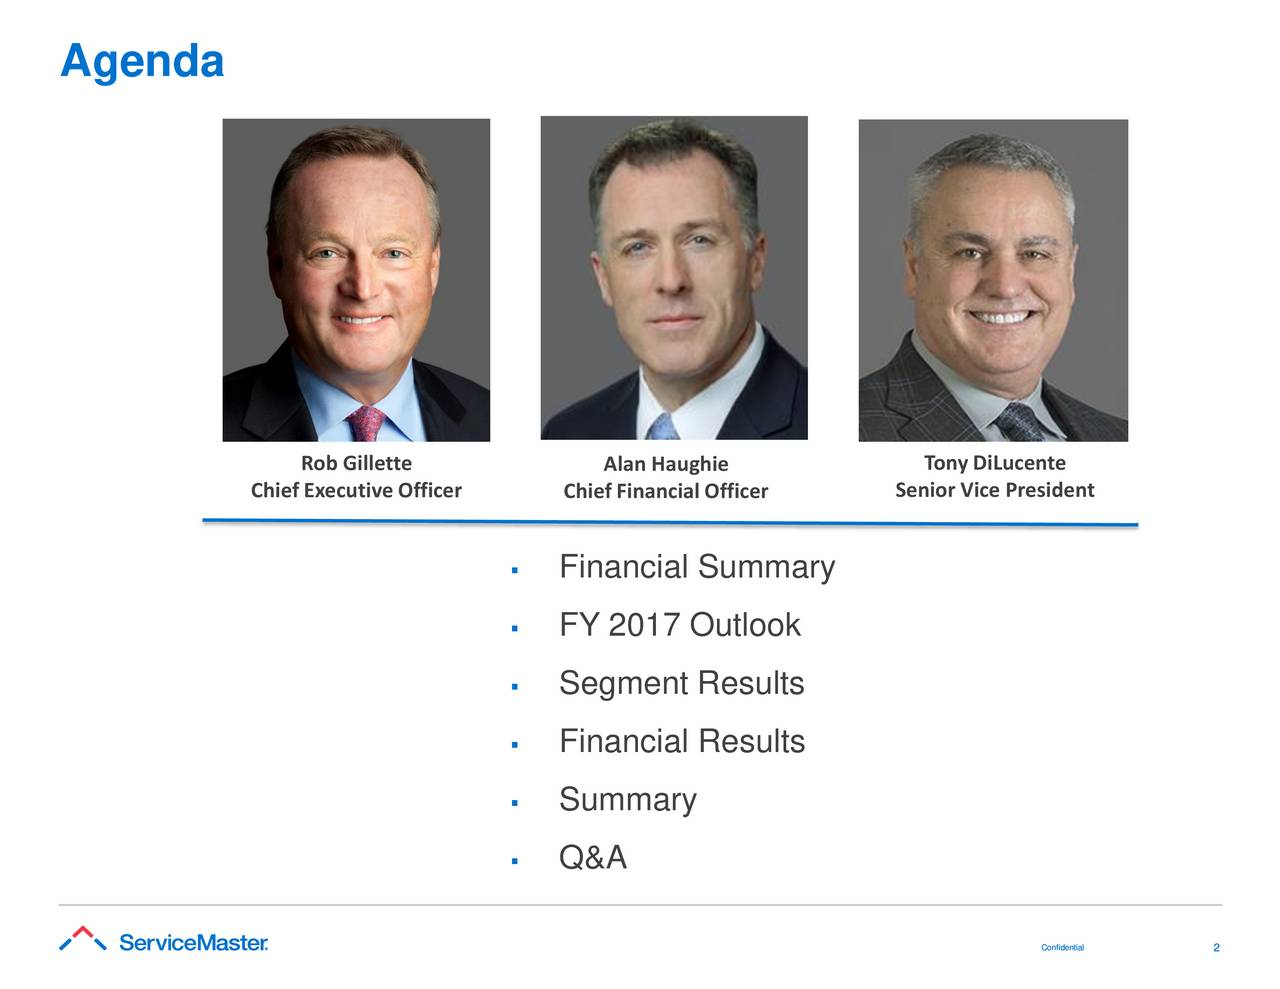 Rob Gillette Alan Haughie Tony DiLucente Chief Executive Officer Chief Financial Officer Senior Vice President Financial Summary FY 2017 Outlook Segment Results Financial Results Summary Q&A Coonnffiiddeennt2iiaall